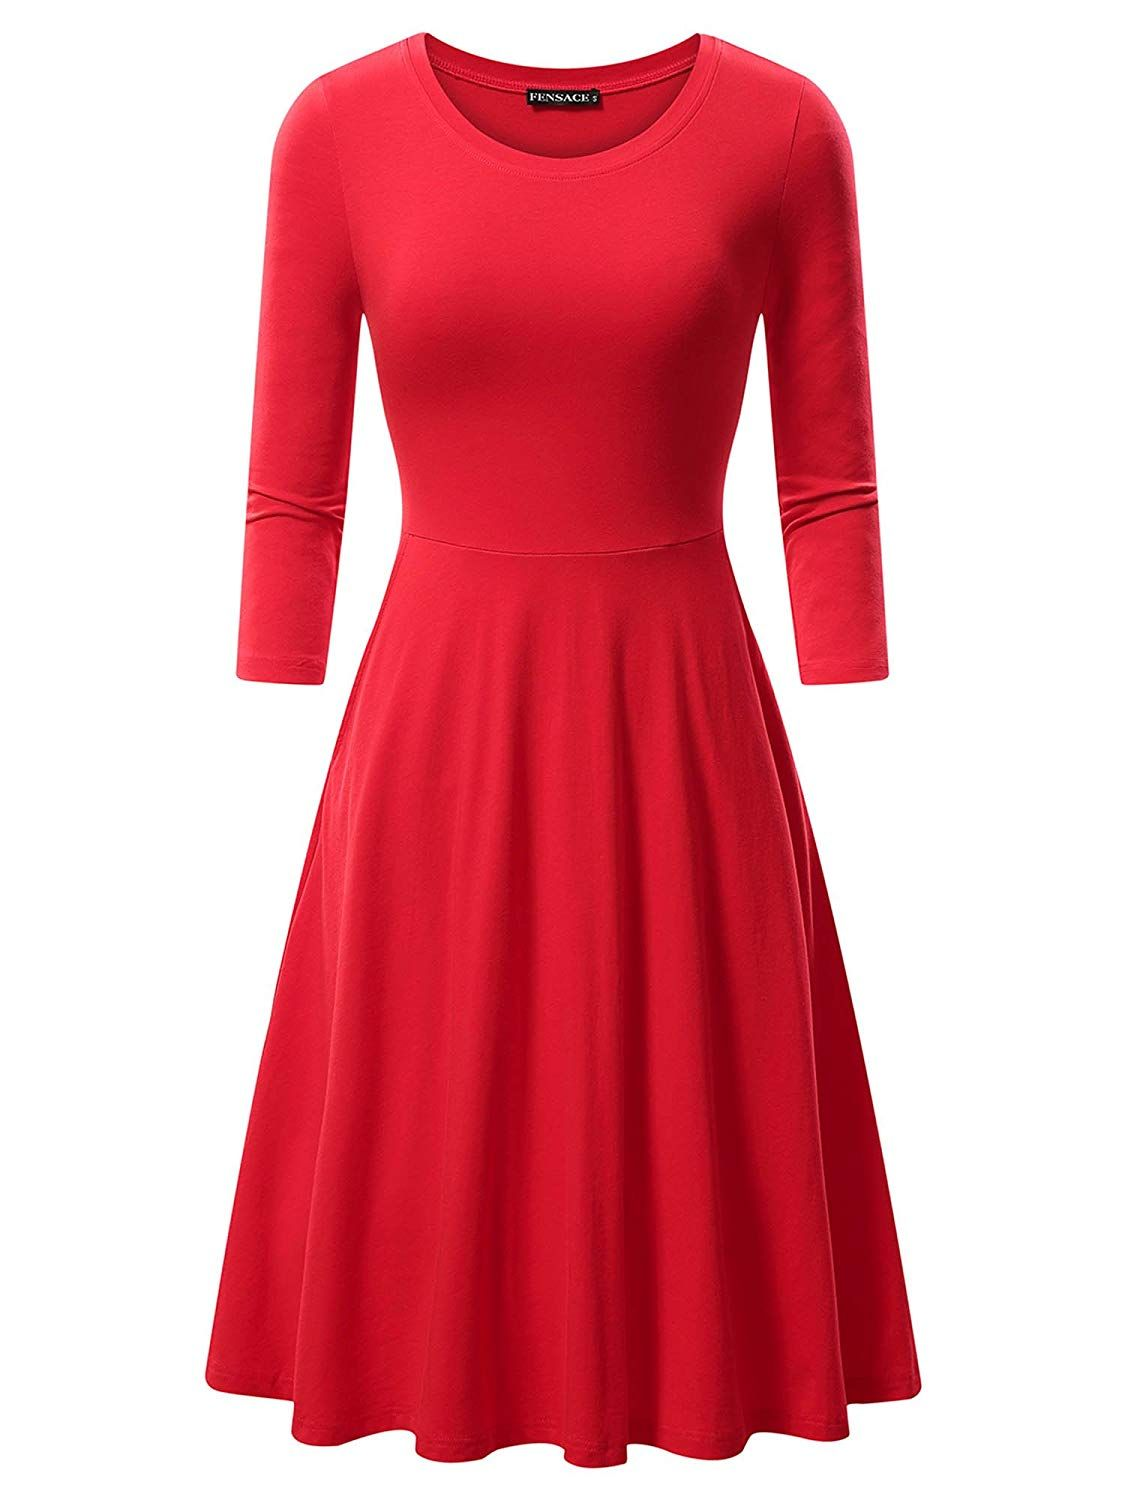 Fensace With Pockets Womens 3 4 Sleeves Casual A Line Cotton Midi Dress More Information Can Be Loca Midi Swing Dress Cotton Midi Dress Retro Swing Dresses [ 1500 x 1125 Pixel ]